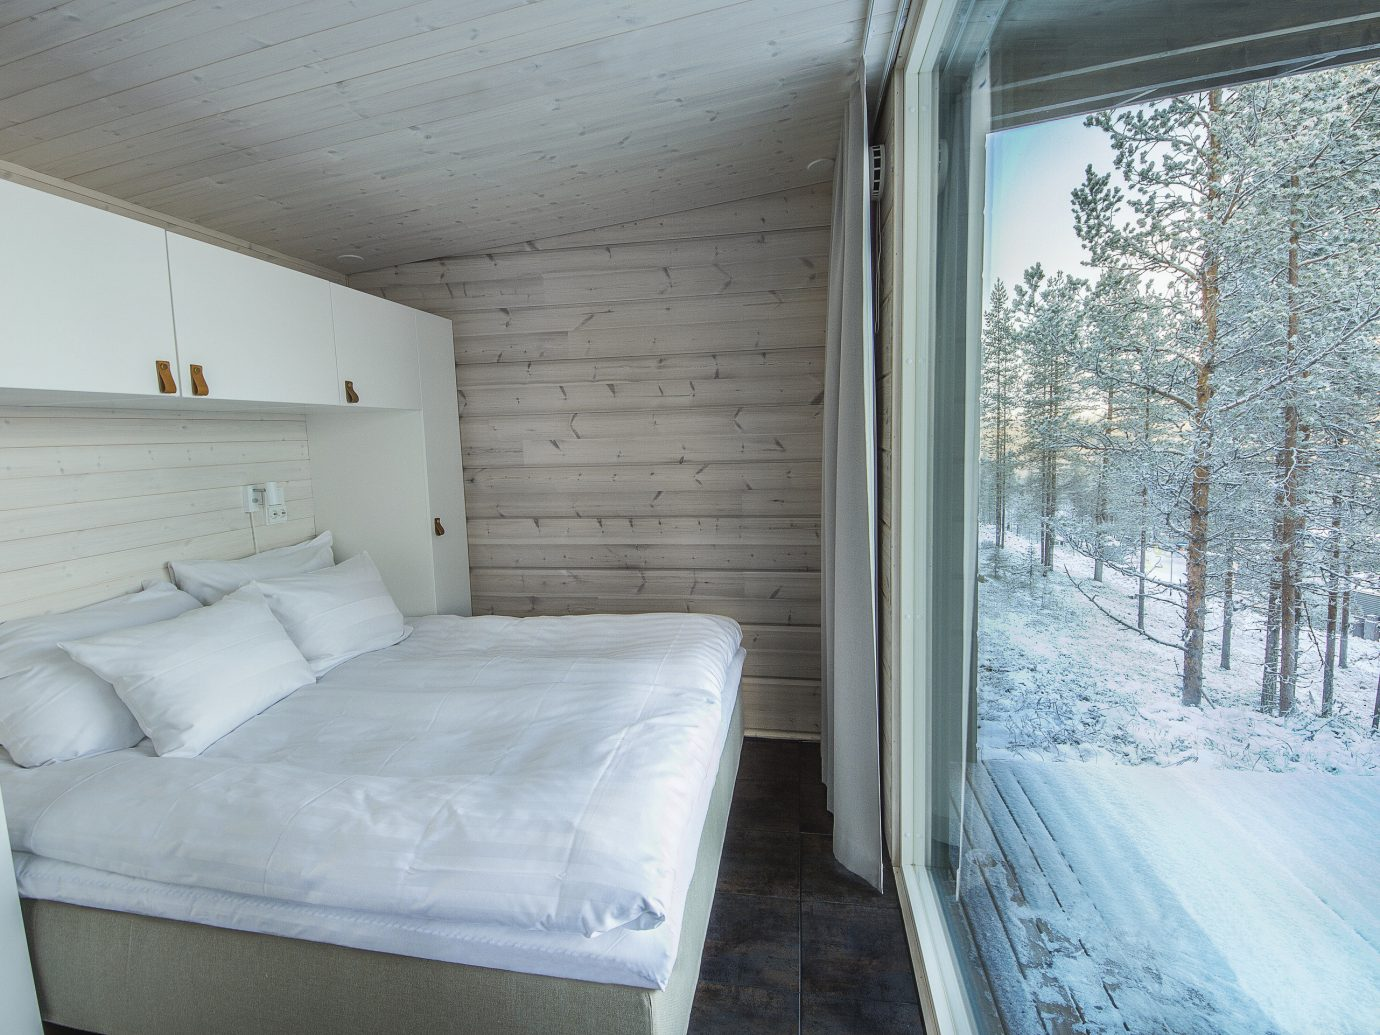 Finland Trip Ideas indoor bed wall room property window Architecture ceiling home house real estate Bedroom snow interior design wood bed frame daylighting floor Winter